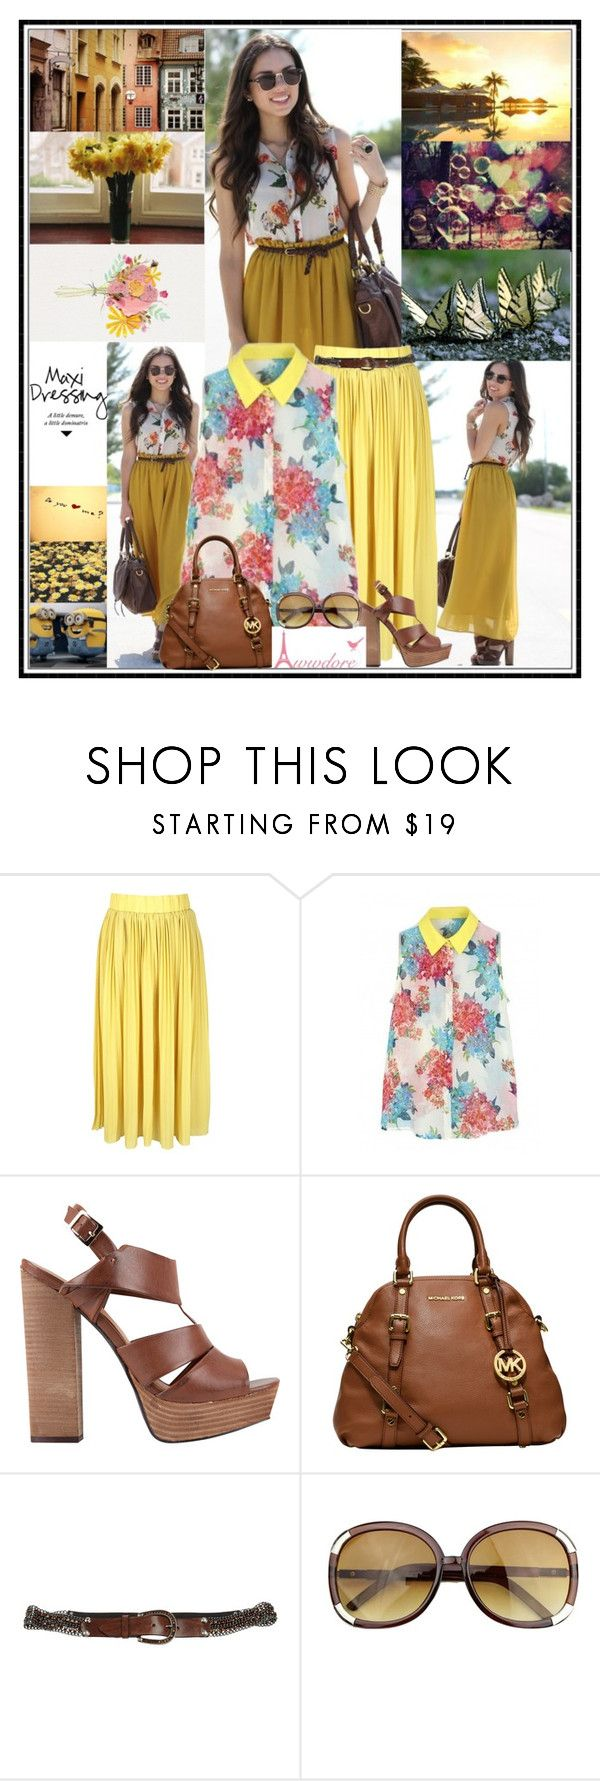 """""""Shaped to the comfort of us, two lovers locked out of ❤"""" by leannesugarplum ❤ liked on Polyvore featuring MIA, MICHAEL Michael Kors, Nanni and vintage"""